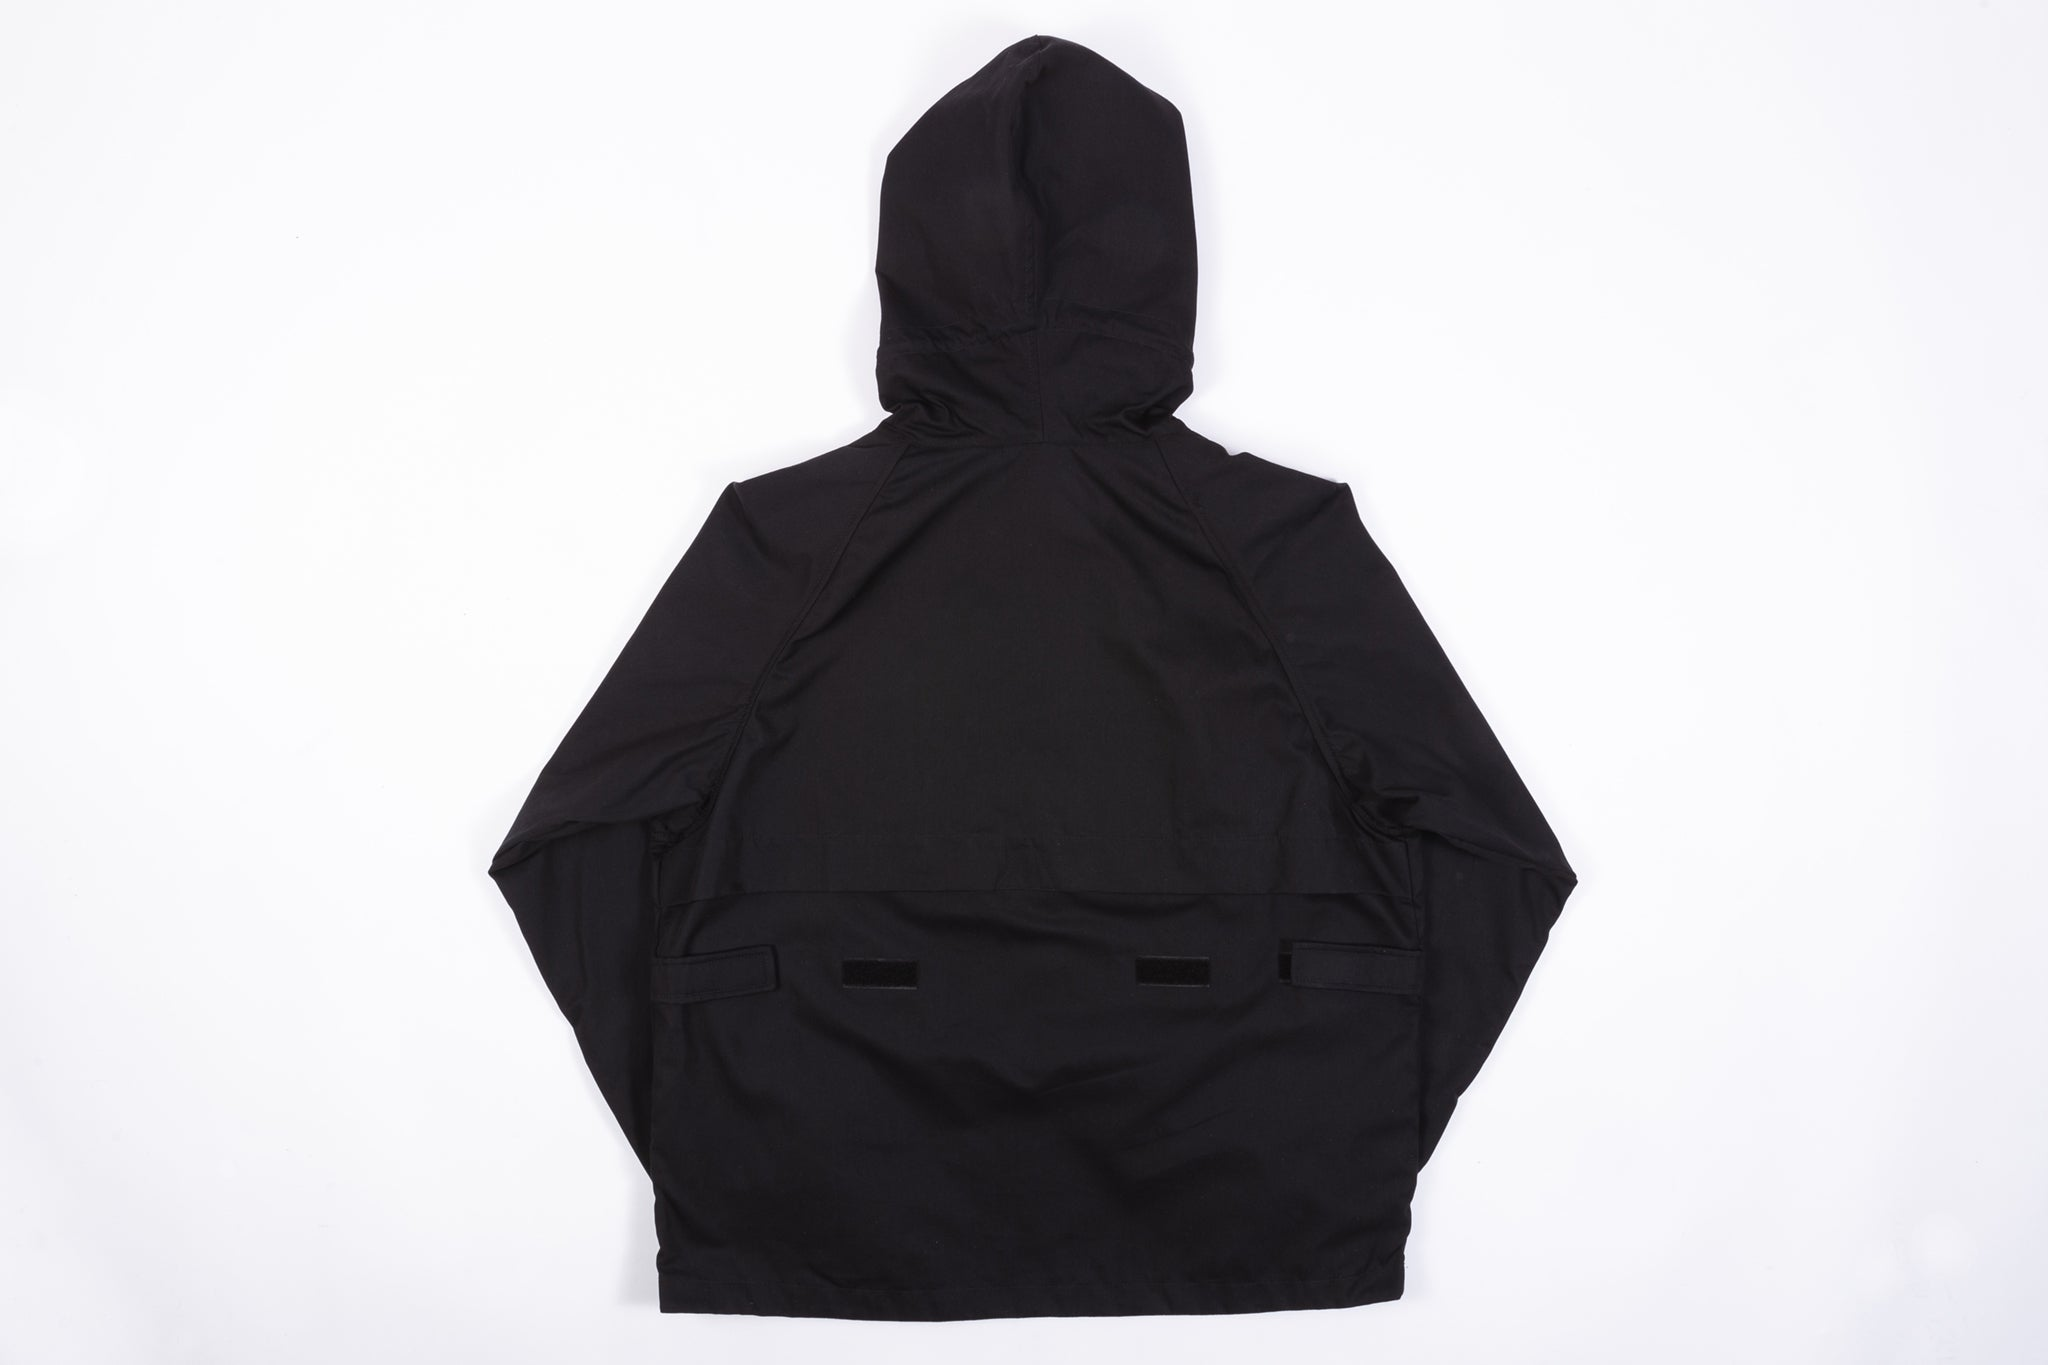 NAPA BY MARTINE ROSE A-FLAINE ANORAK JACKET